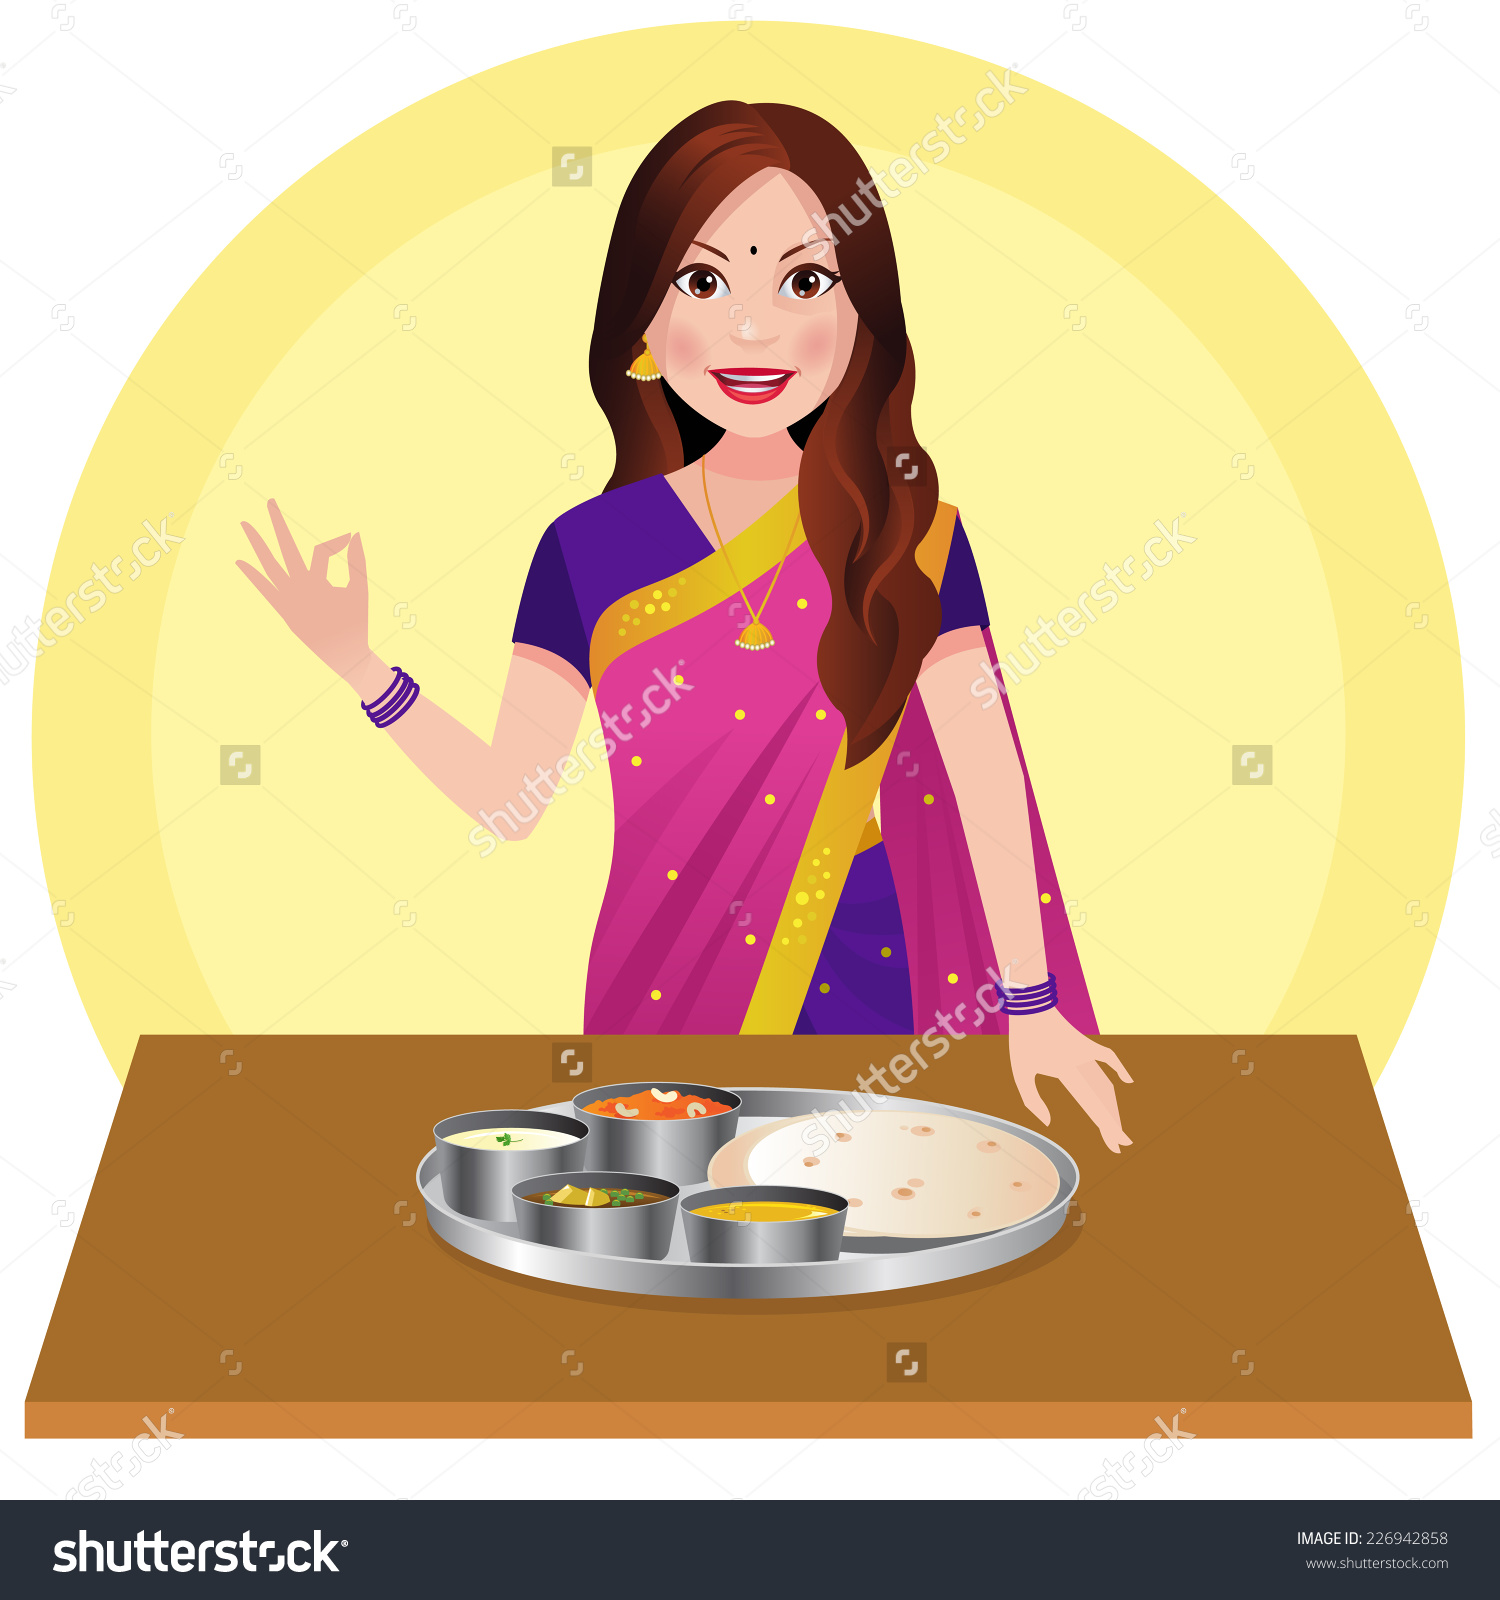 Indian lady chef clipart png free download Indian lady chef clipart - ClipartFest png free download